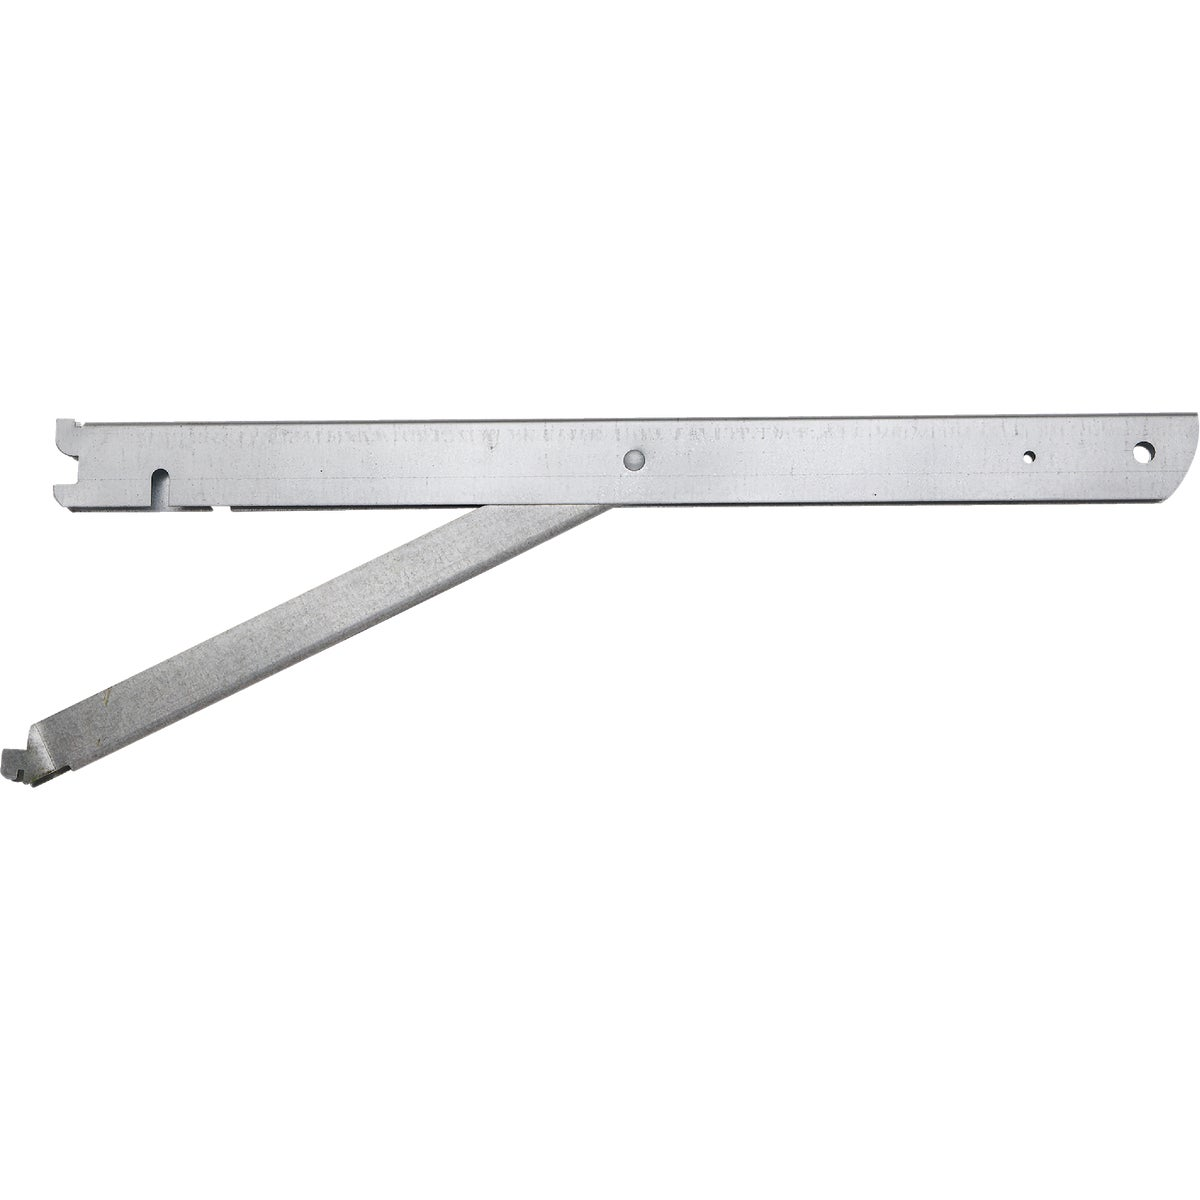 "20"" SUPPORT BRACKET - BK010322 by Knape & Vogt Mfg Co"